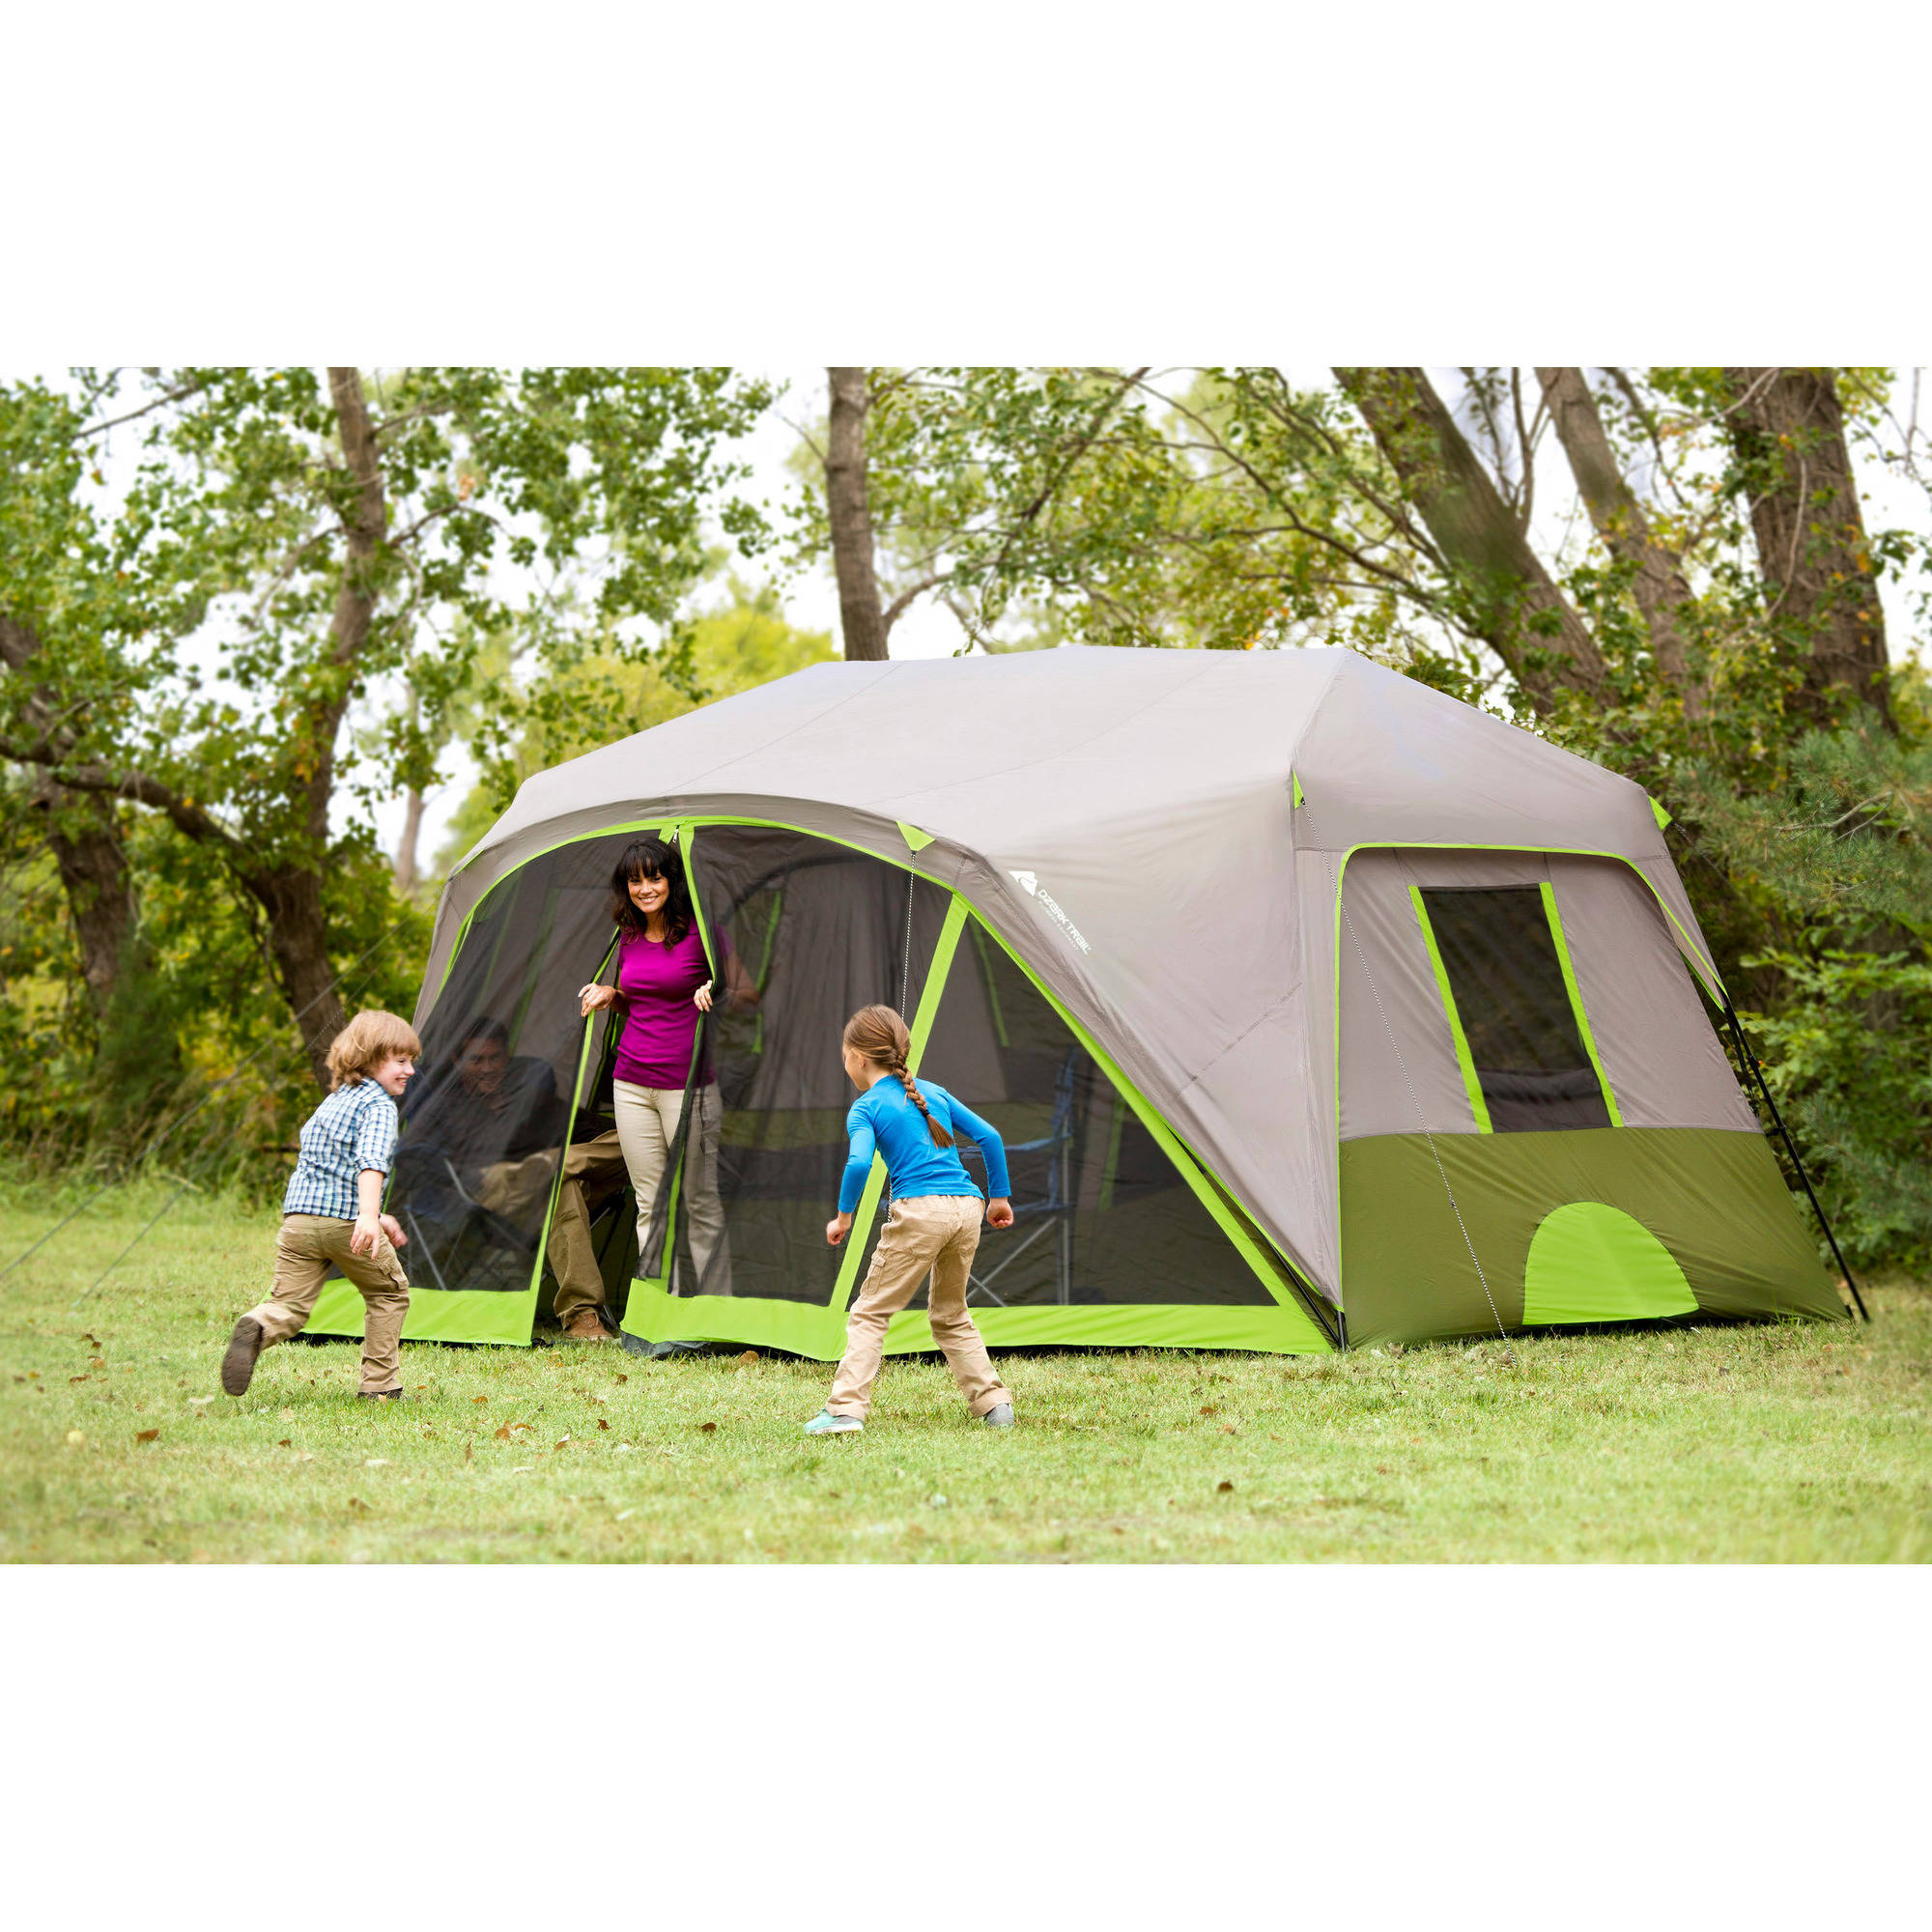 Ozark Trail 9 Person 2 Room Instant Cabin Tent with Screen Room - Walmart.com  sc 1 st  Walmart.com : best 2 room family tent - memphite.com